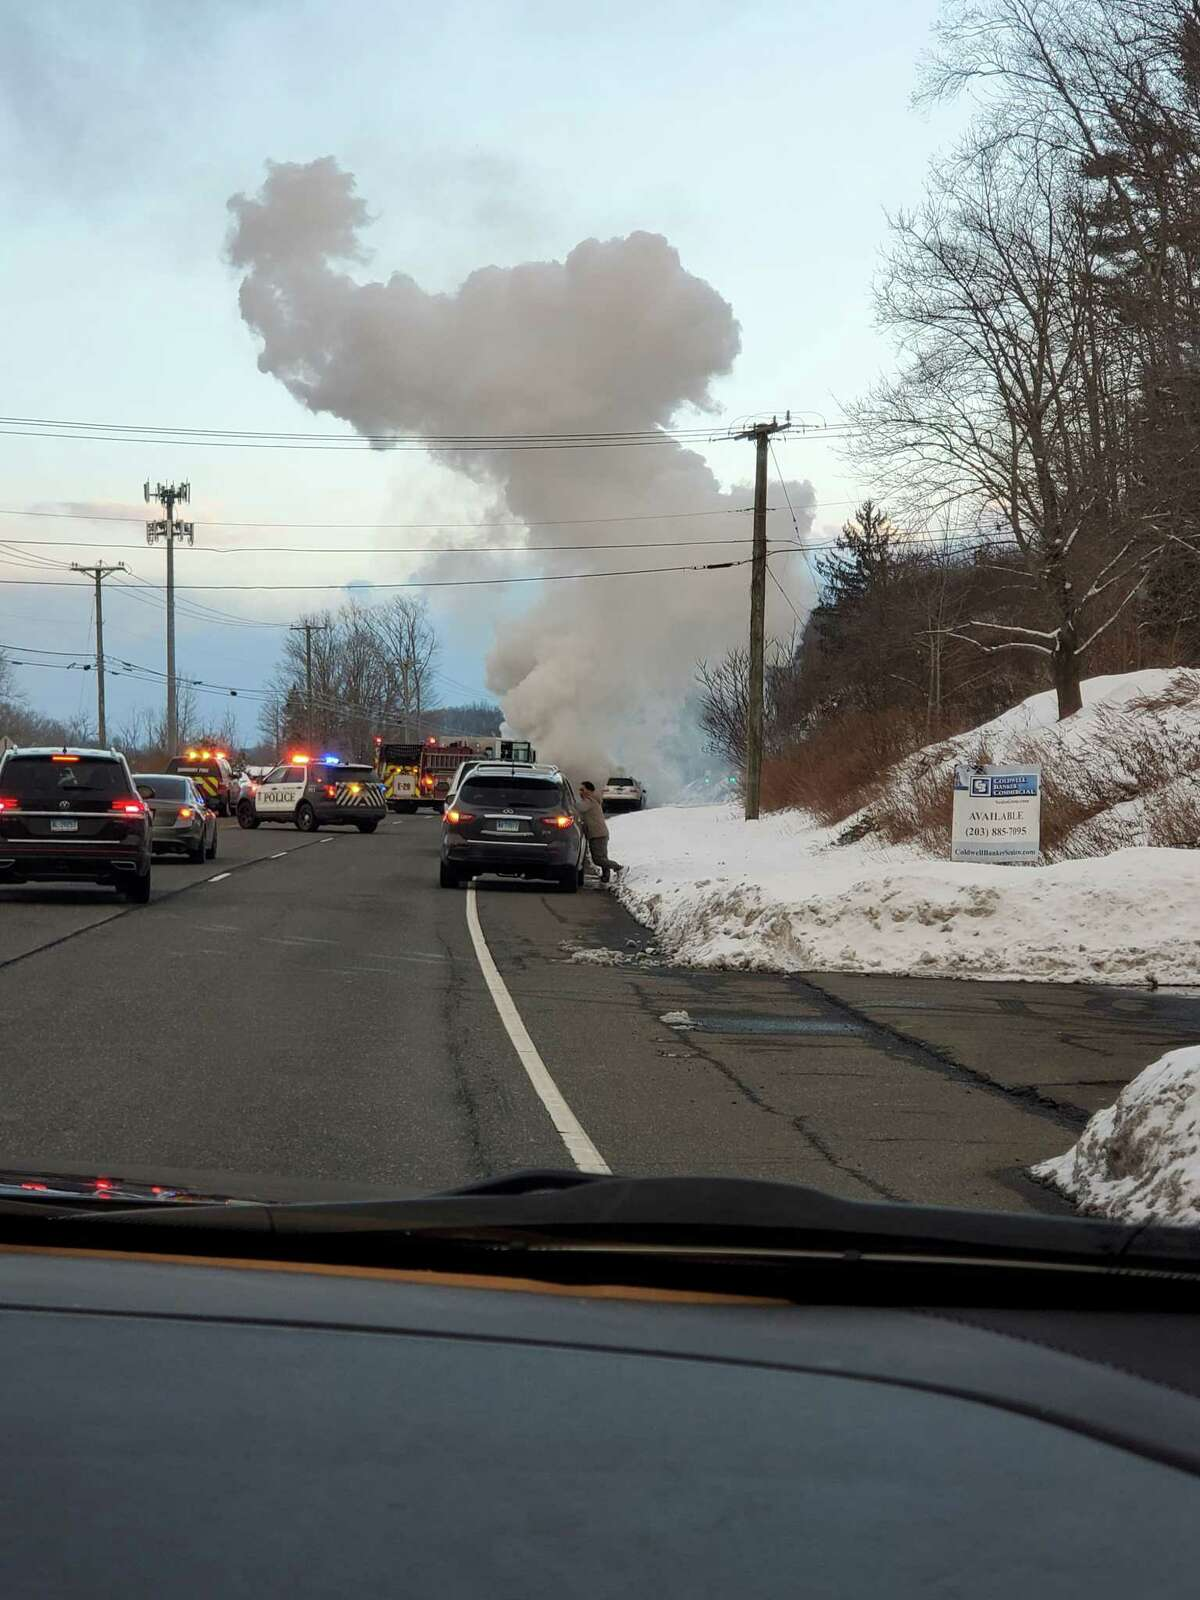 Police and fire units were called to a fully-involved car fire on Route 7 near the Danbury-Ridgefield border. One person was taken to the hospital, according to dispatch reports.